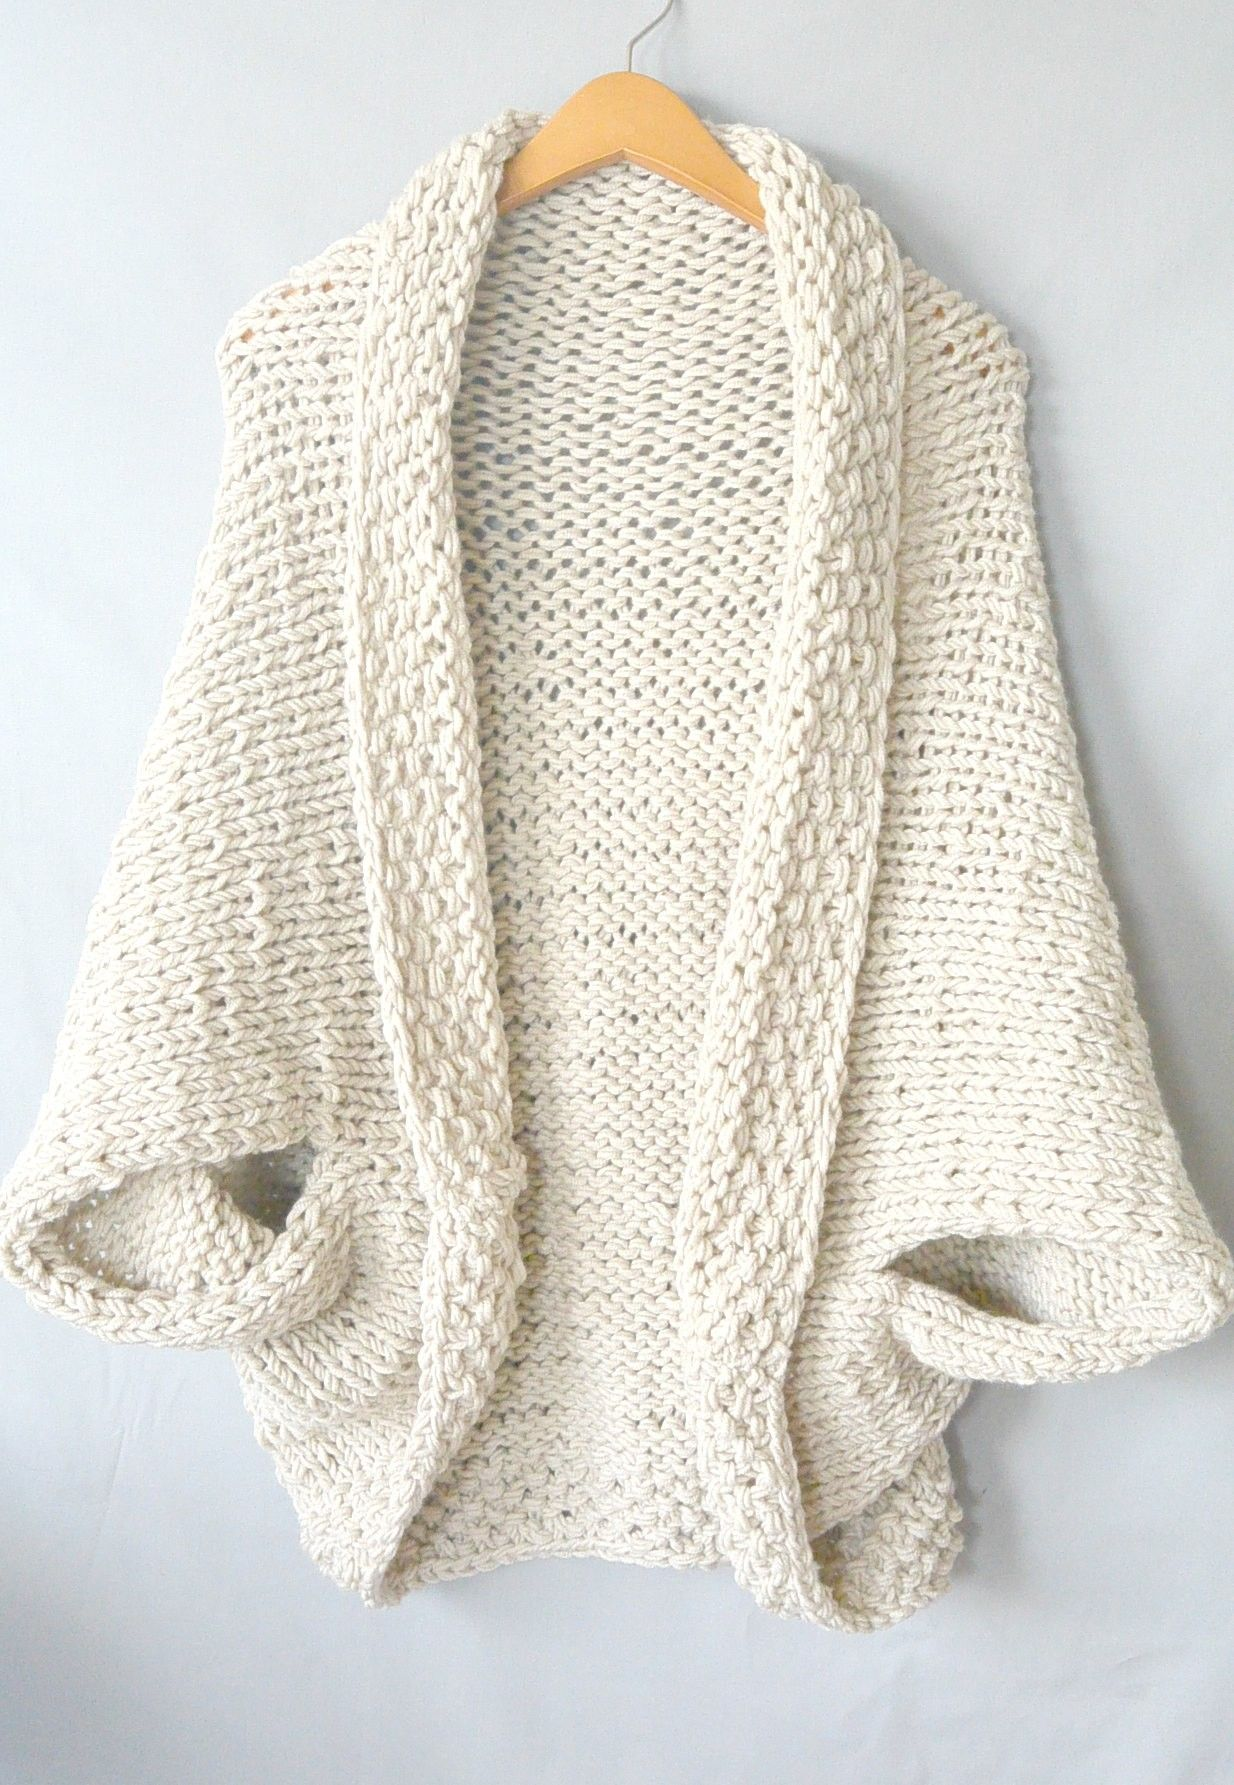 Knit Kit - The Easy Knit Blanket Sweater | Neat Things to Purchase ...